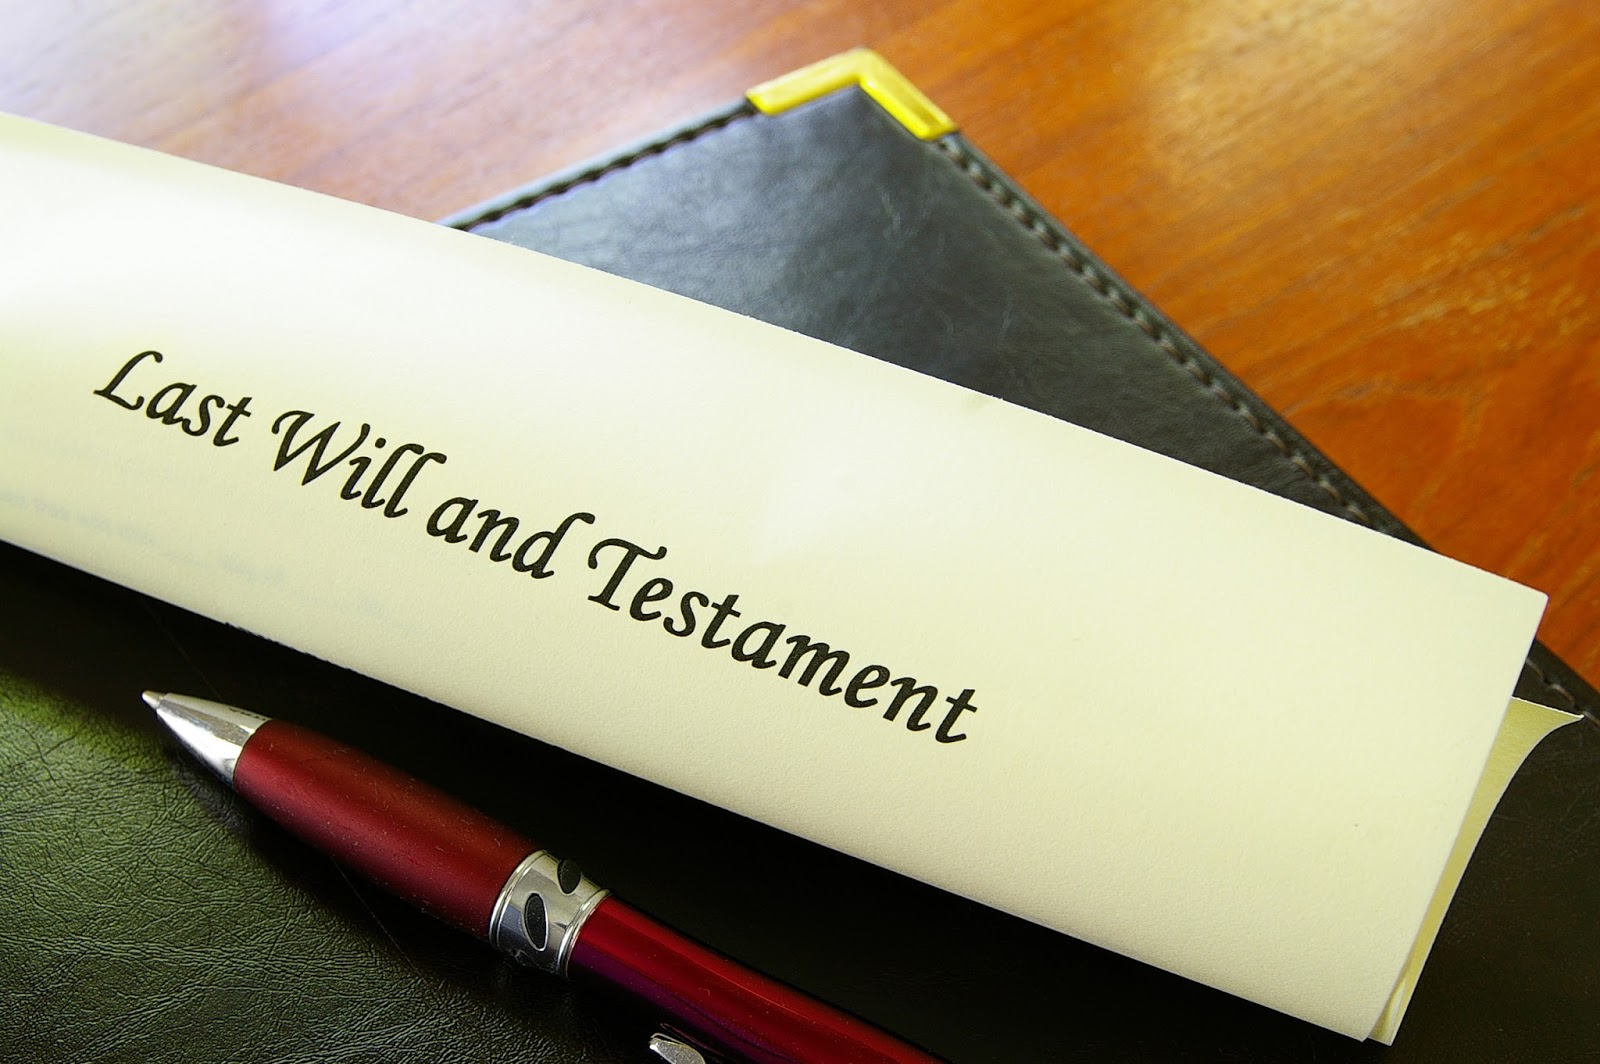 Can I generate My Will & Last Testament Online?